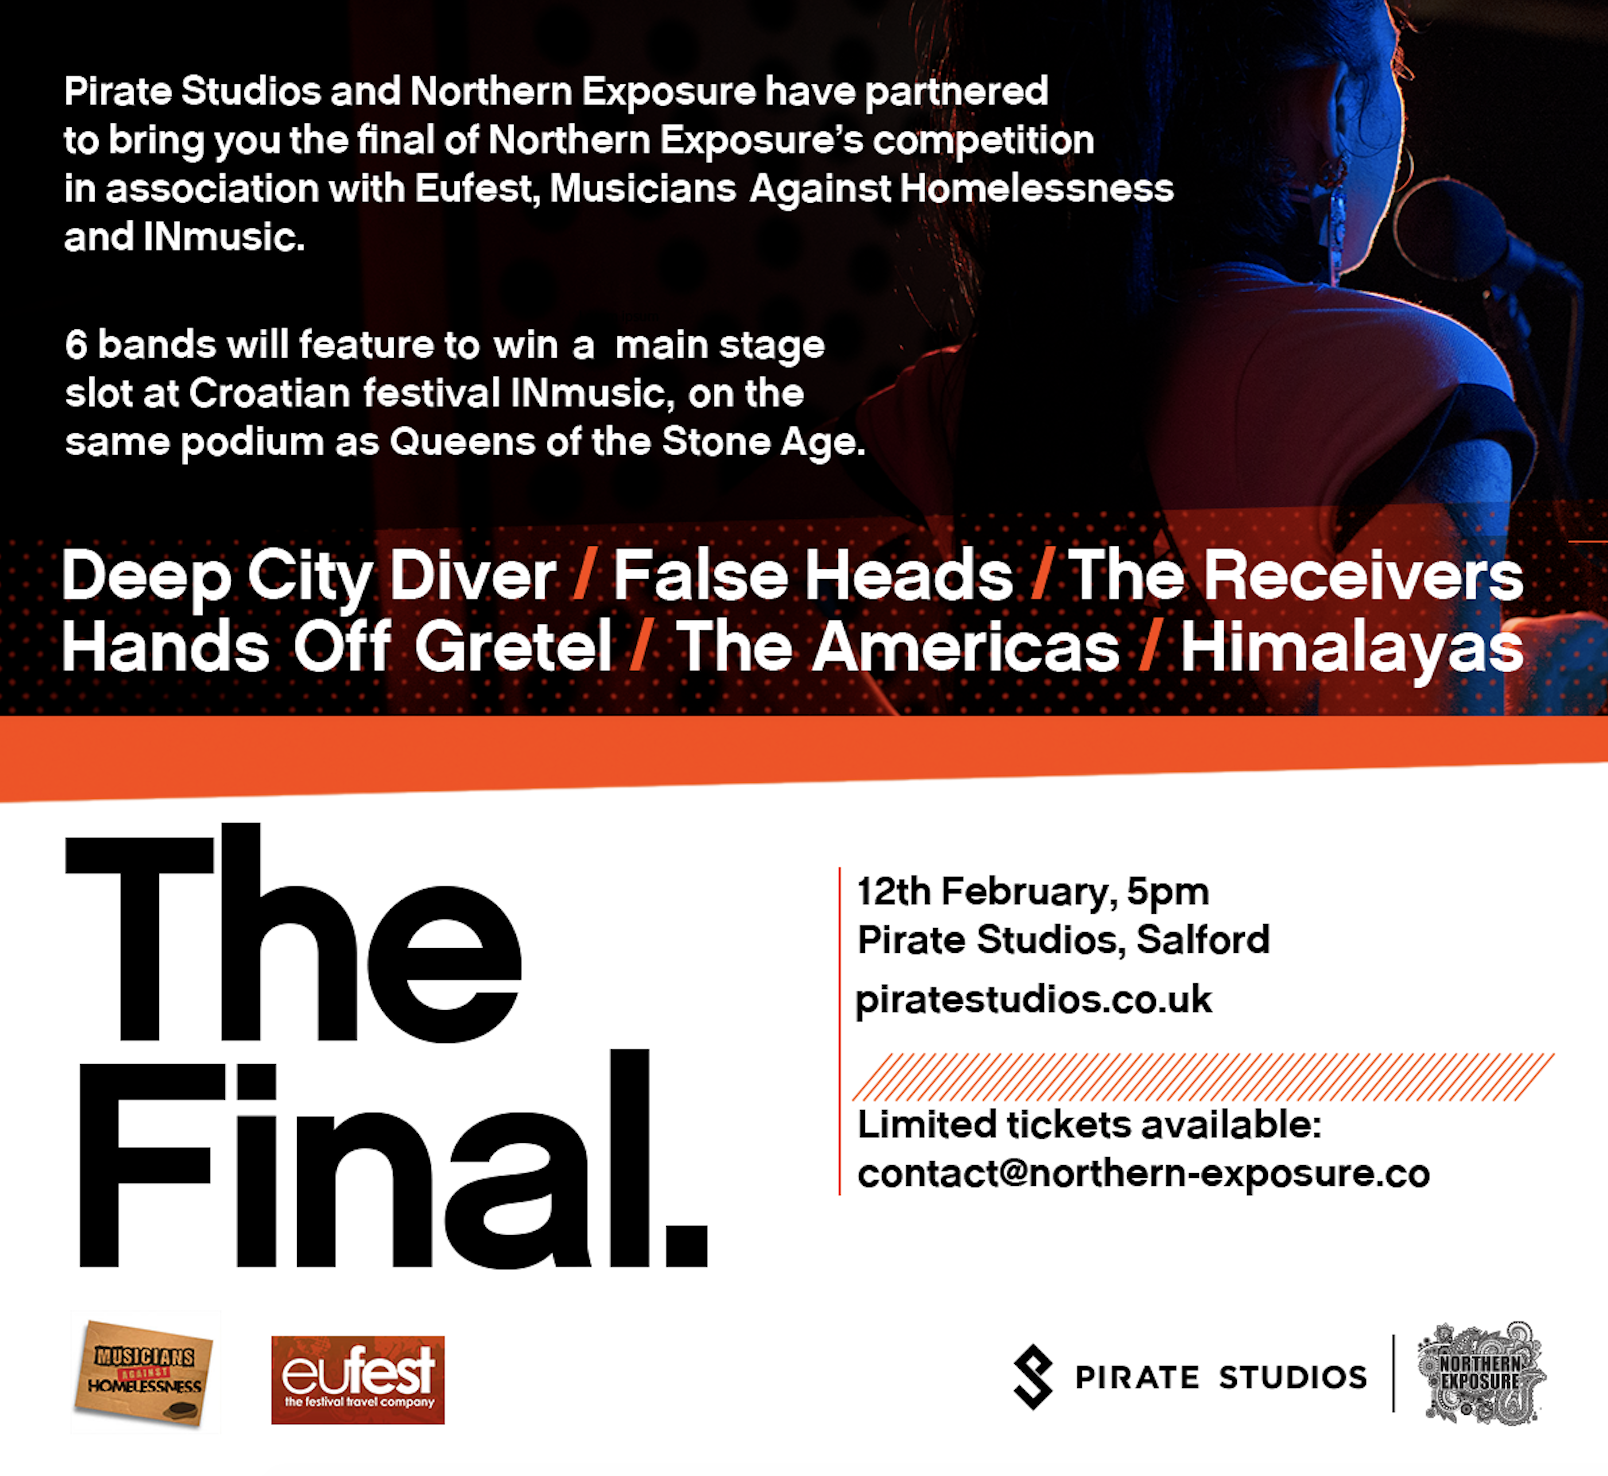 PREVIEW: NORTHERN EXPOSURE & PIRATE STUDIOS – THE FINAL